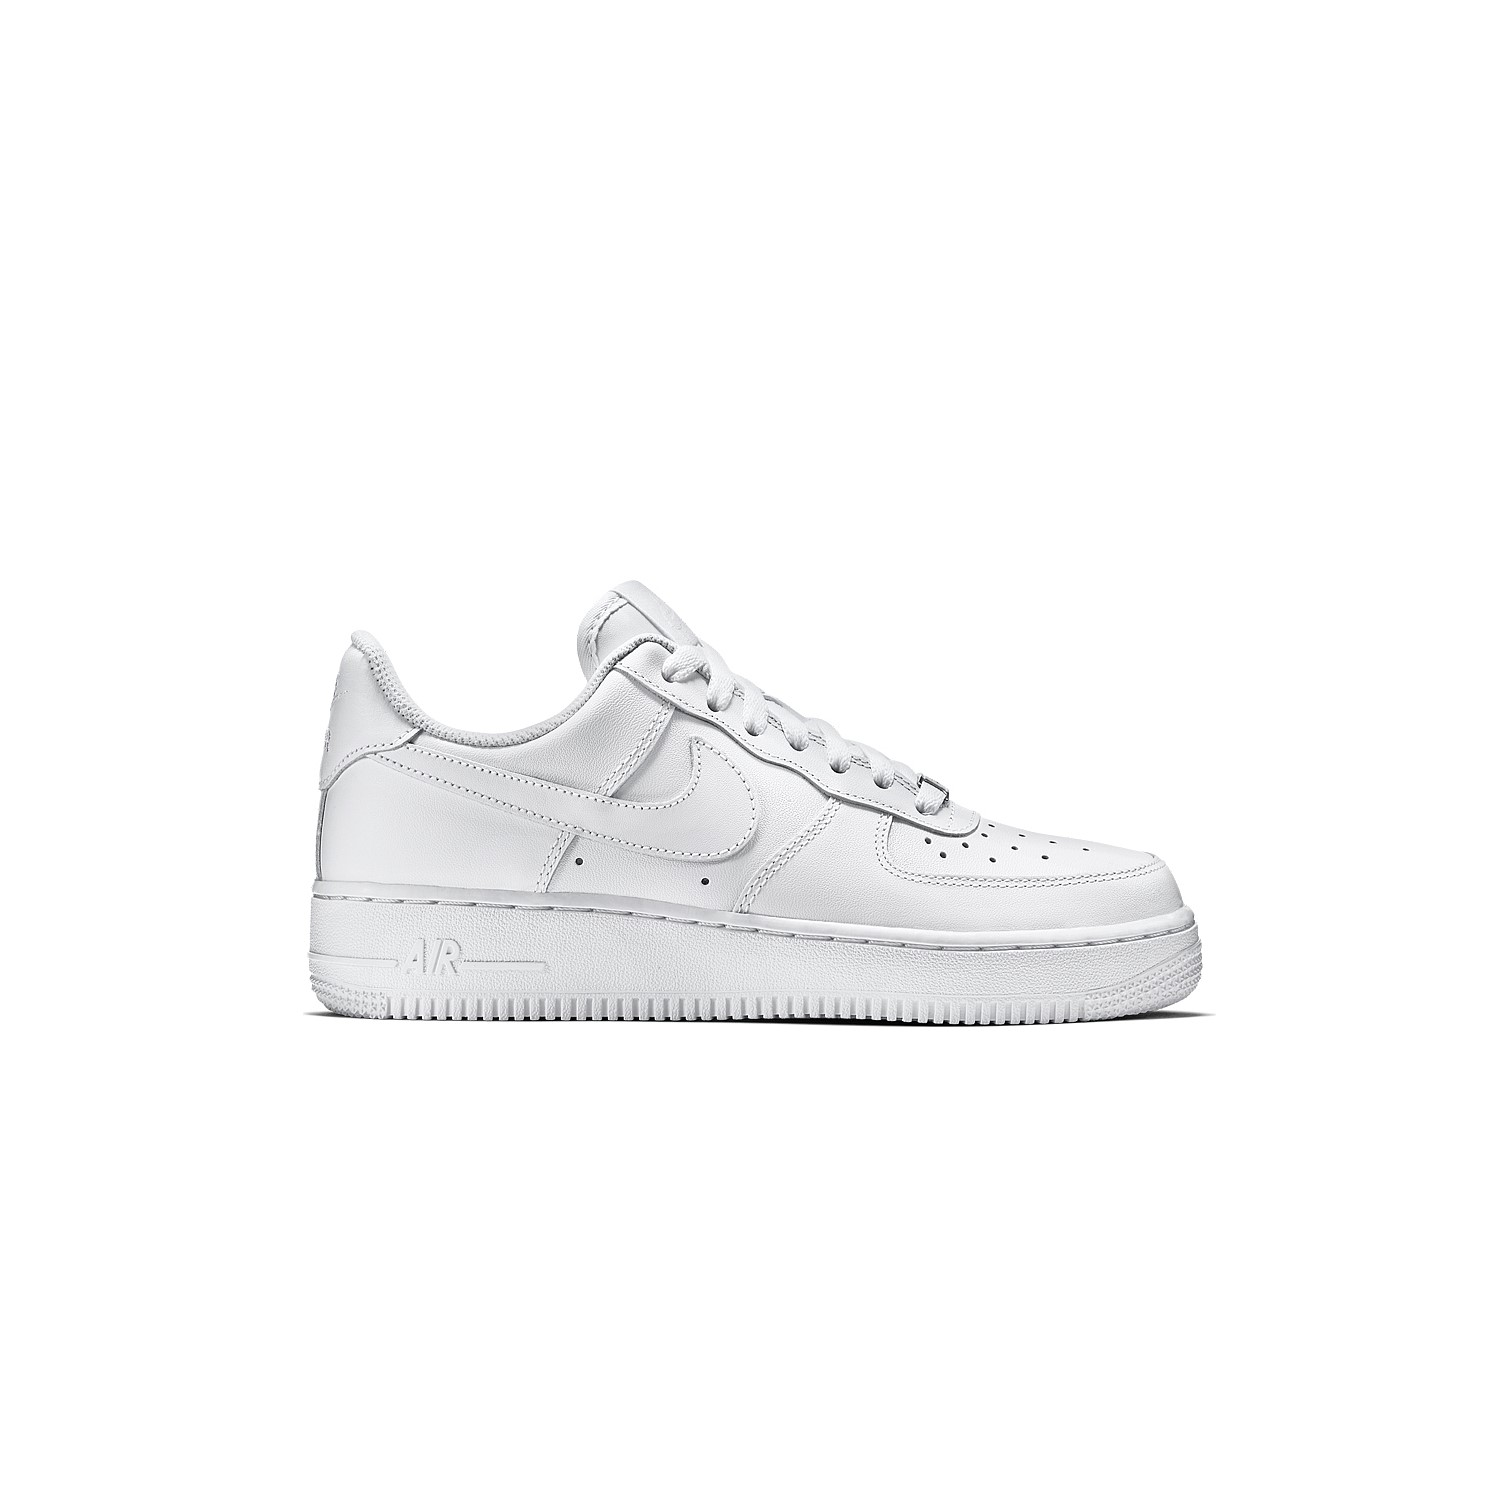 ad5c33b48b3 Nike | Shop Nike Training and Lifestyle Clothing, Footwear and Accessories  | Stirling Sports - Air Force 1 '07 Low Womens